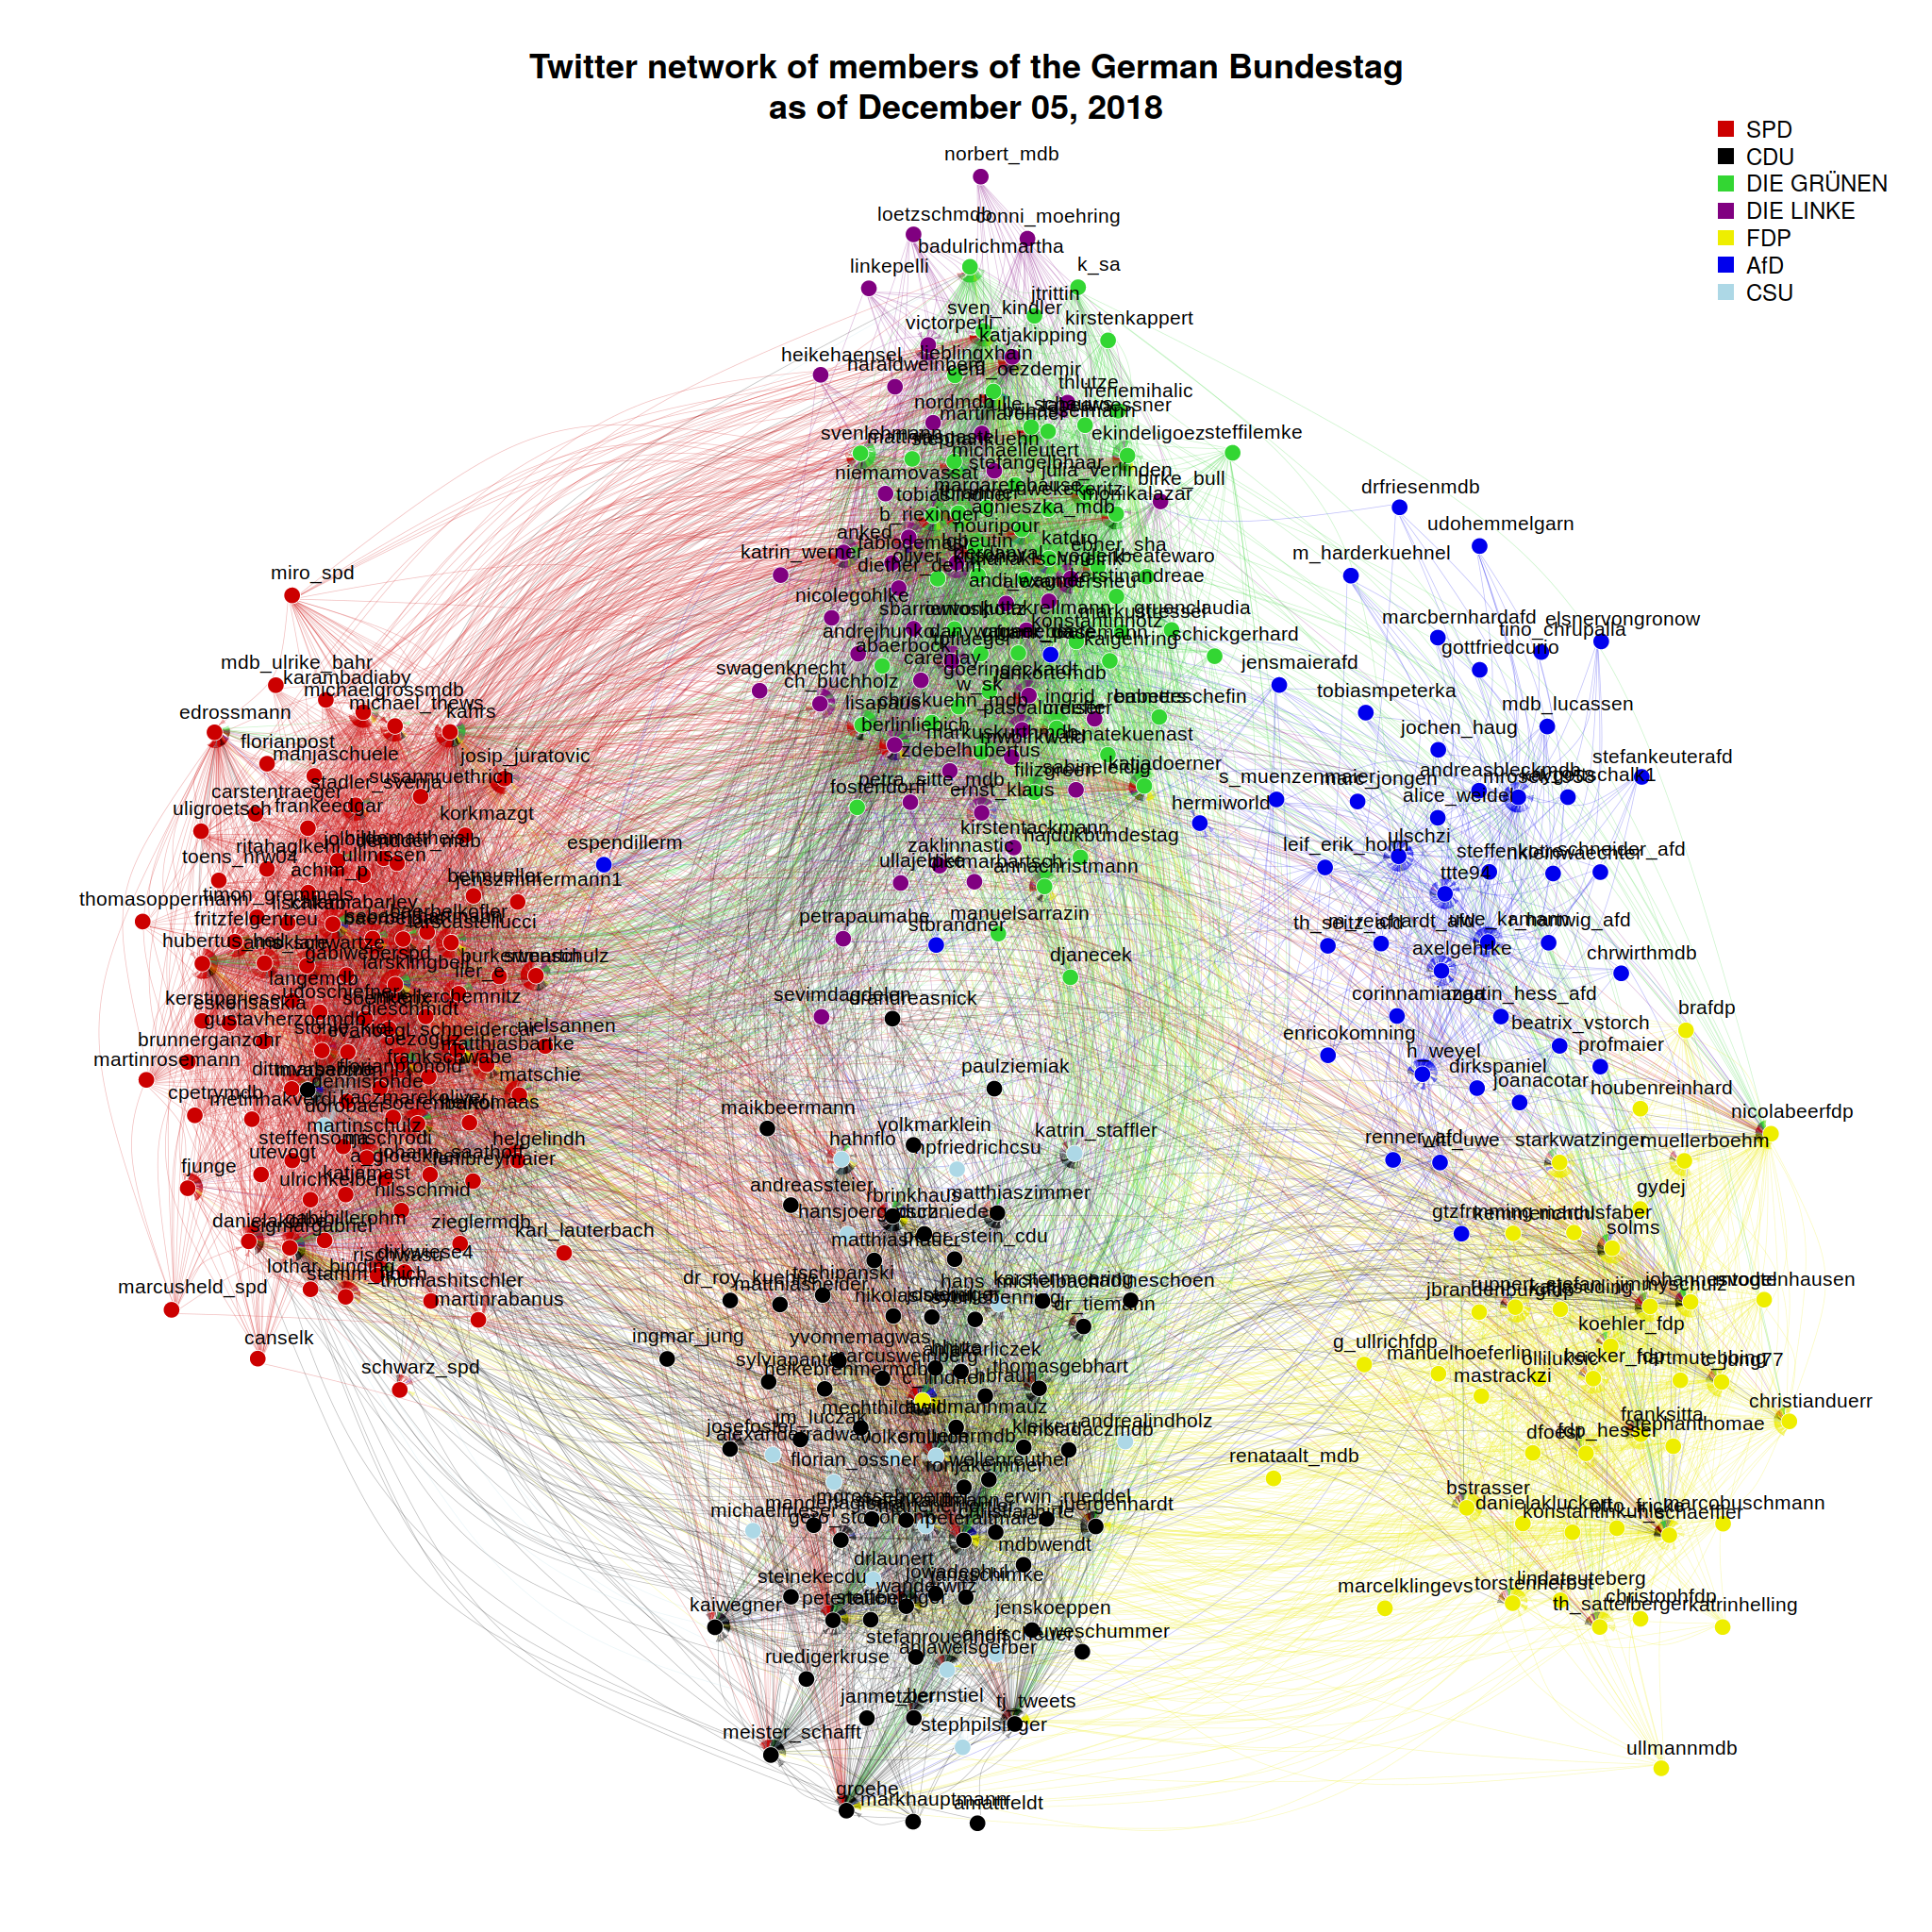 A Twitter network of members of the 19th German Bundestag